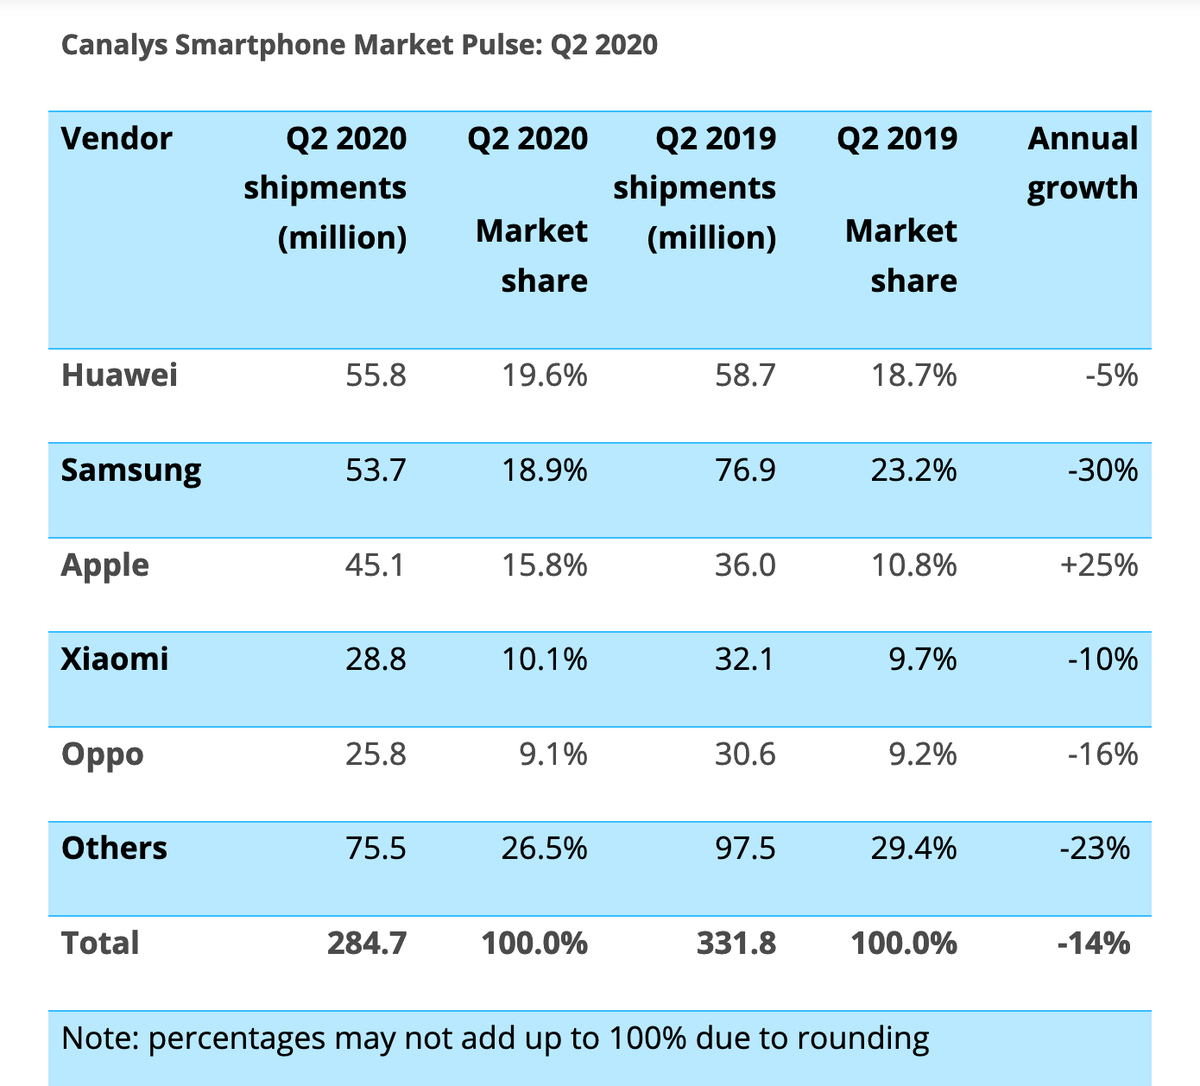 While every other major smartphone maker lost market share during the pandemic, Apple posted a 25% growth https://t.co/rYNovrWPTy